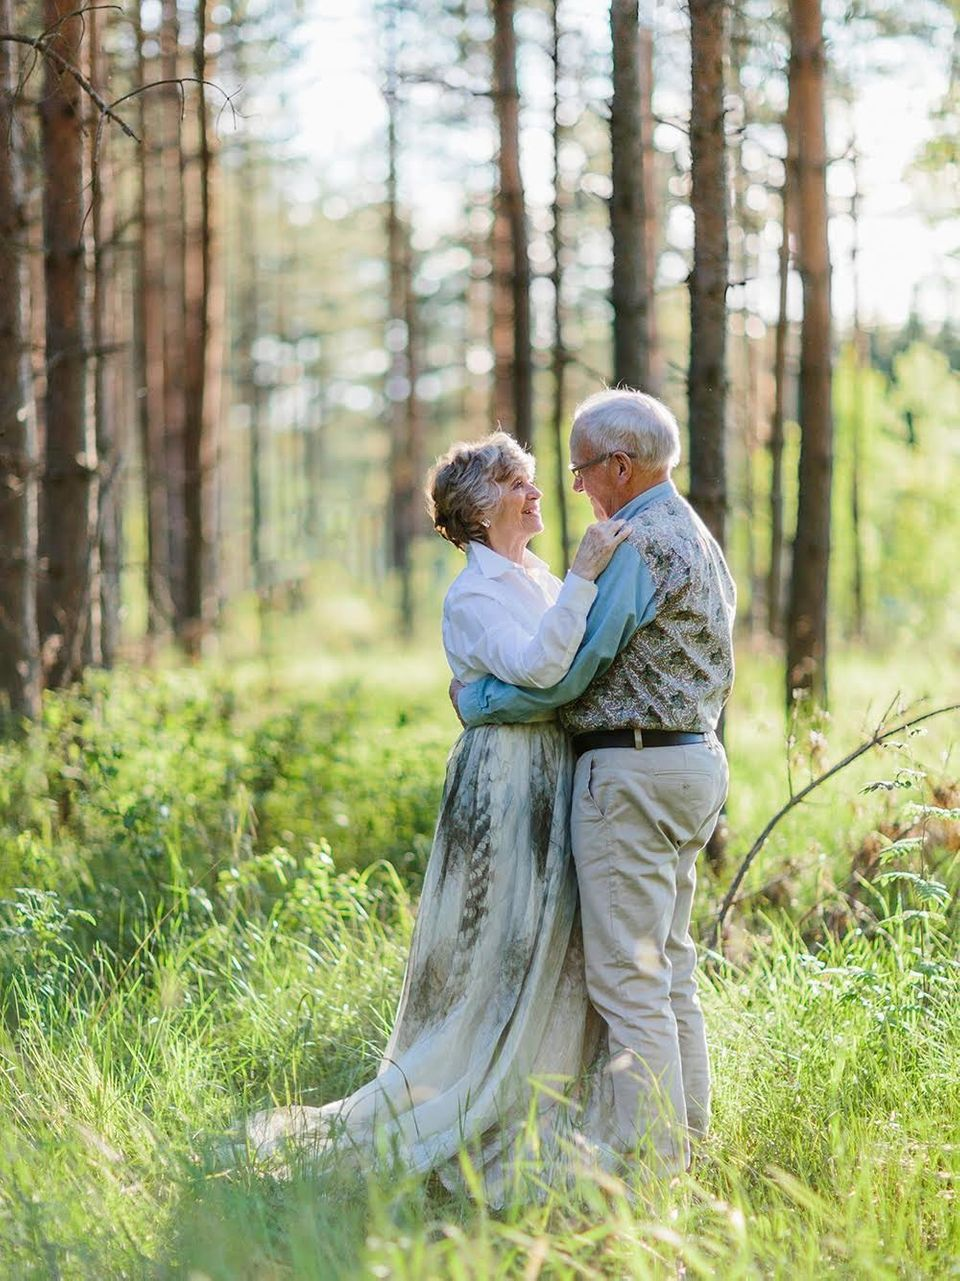 """We met on Thursday, March 31, 1960. My best friend, Bengt, and I escorted Ulla downstairs from a bar we had visited. I"